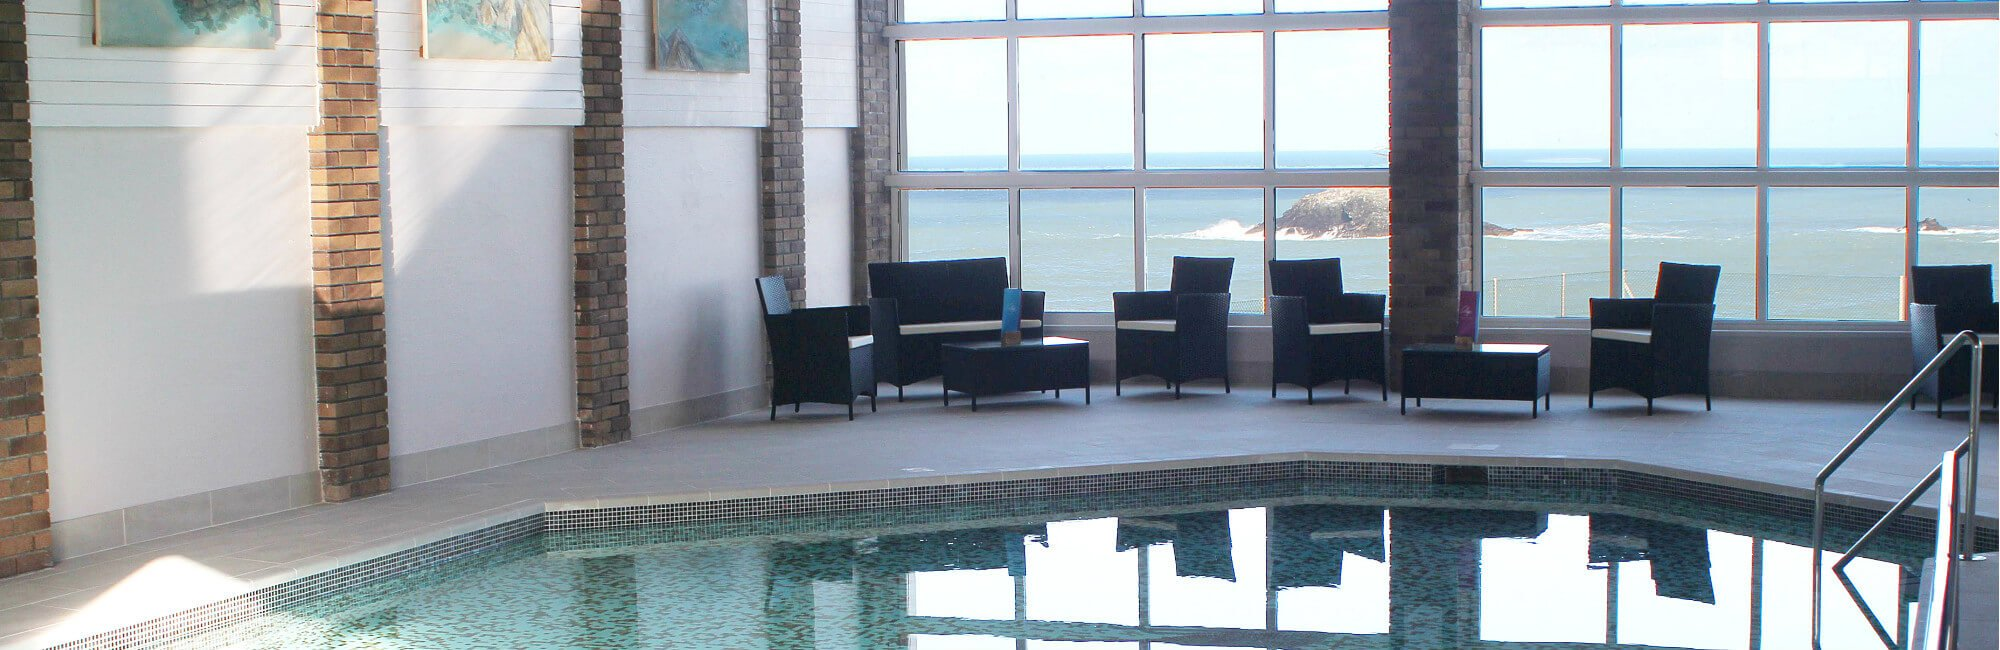 Crantock Bay Spa Pool - Cancer Touch Therapy